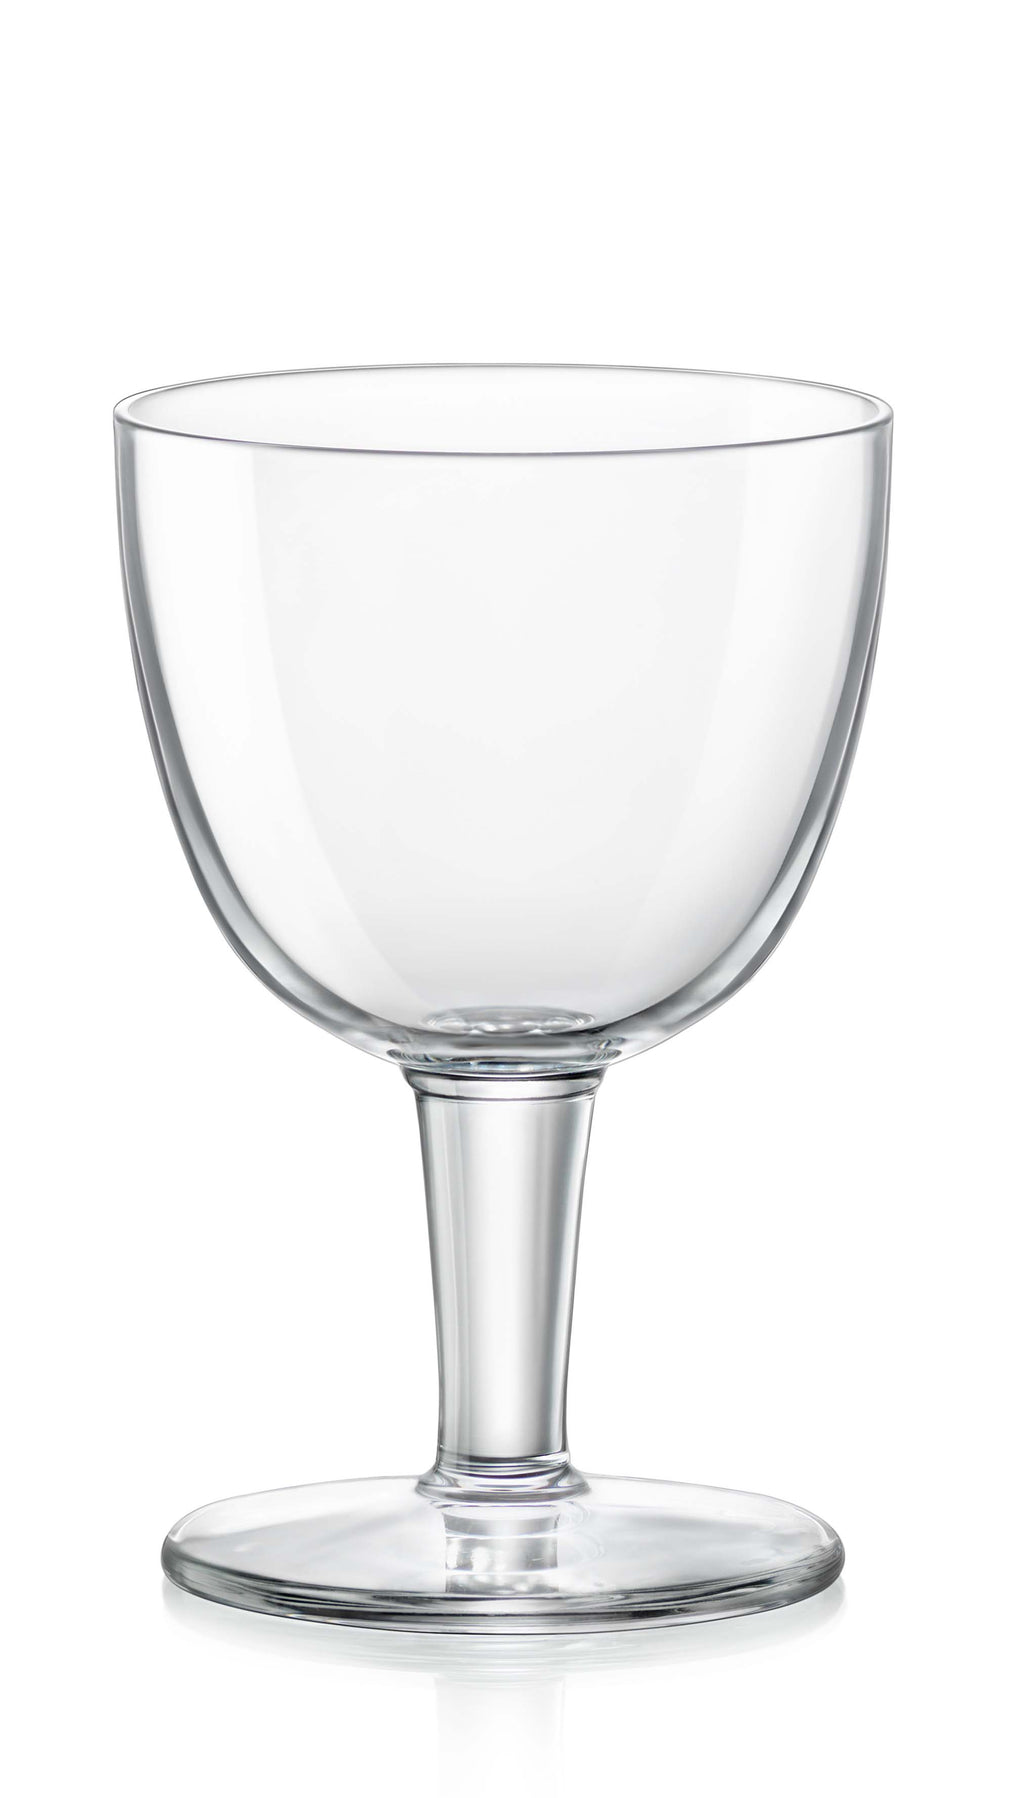 Metropolitan - Abbey Beer Glass,Beer Glass,Metropolitan Glassware